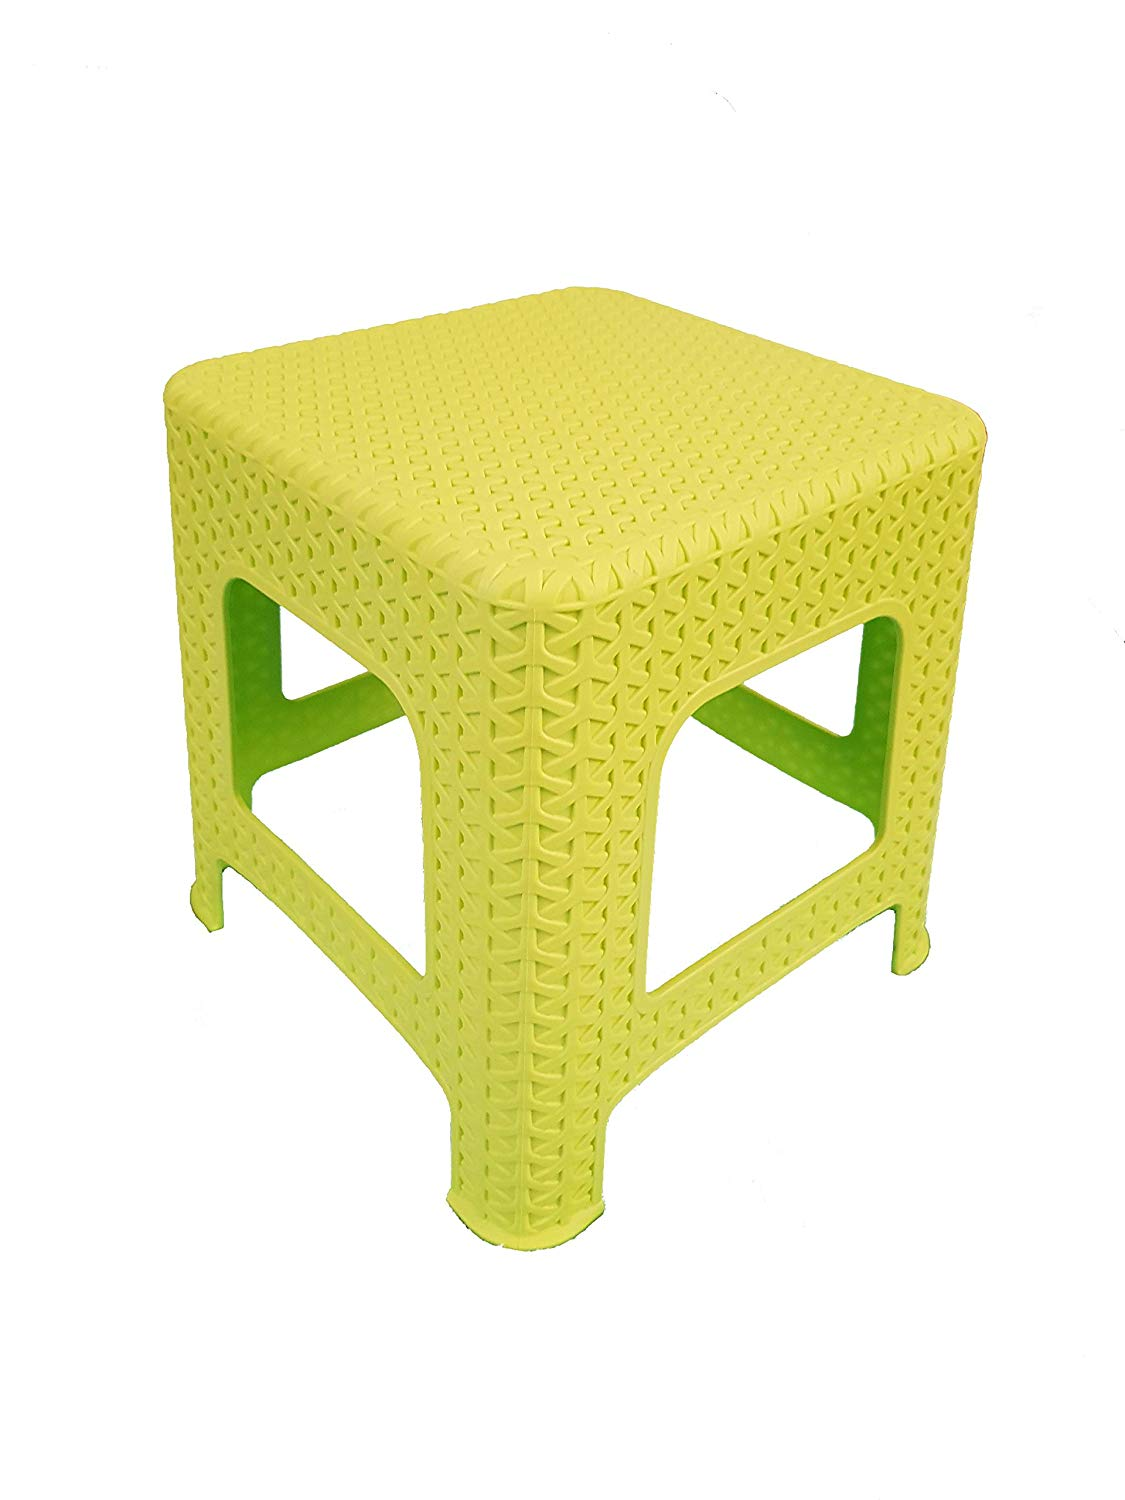 Miraculous Holds Up To 330 Lbs Acko 16 Inches Super Strong Folding Step Onthecornerstone Fun Painted Chair Ideas Images Onthecornerstoneorg